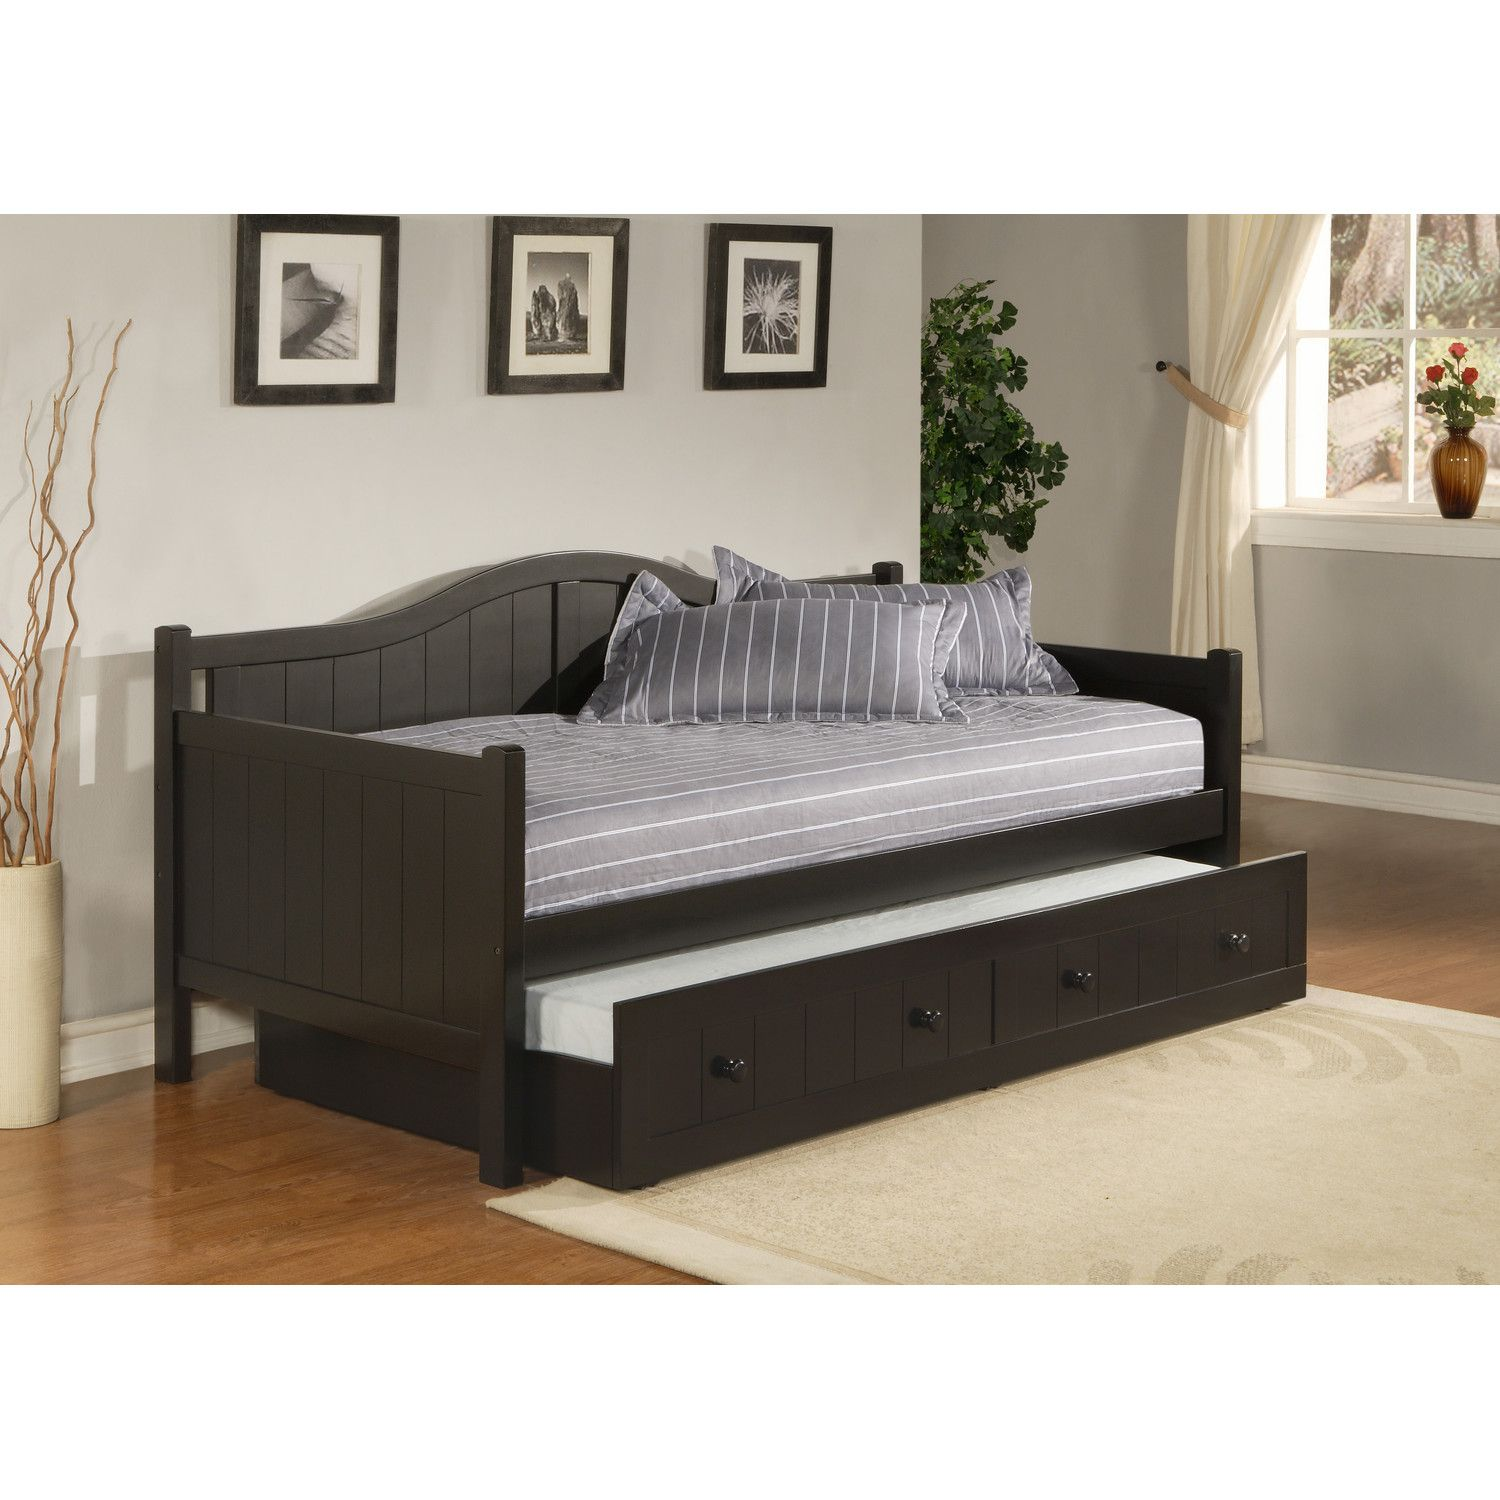 daybed frame for full size mattress departamento pinterest